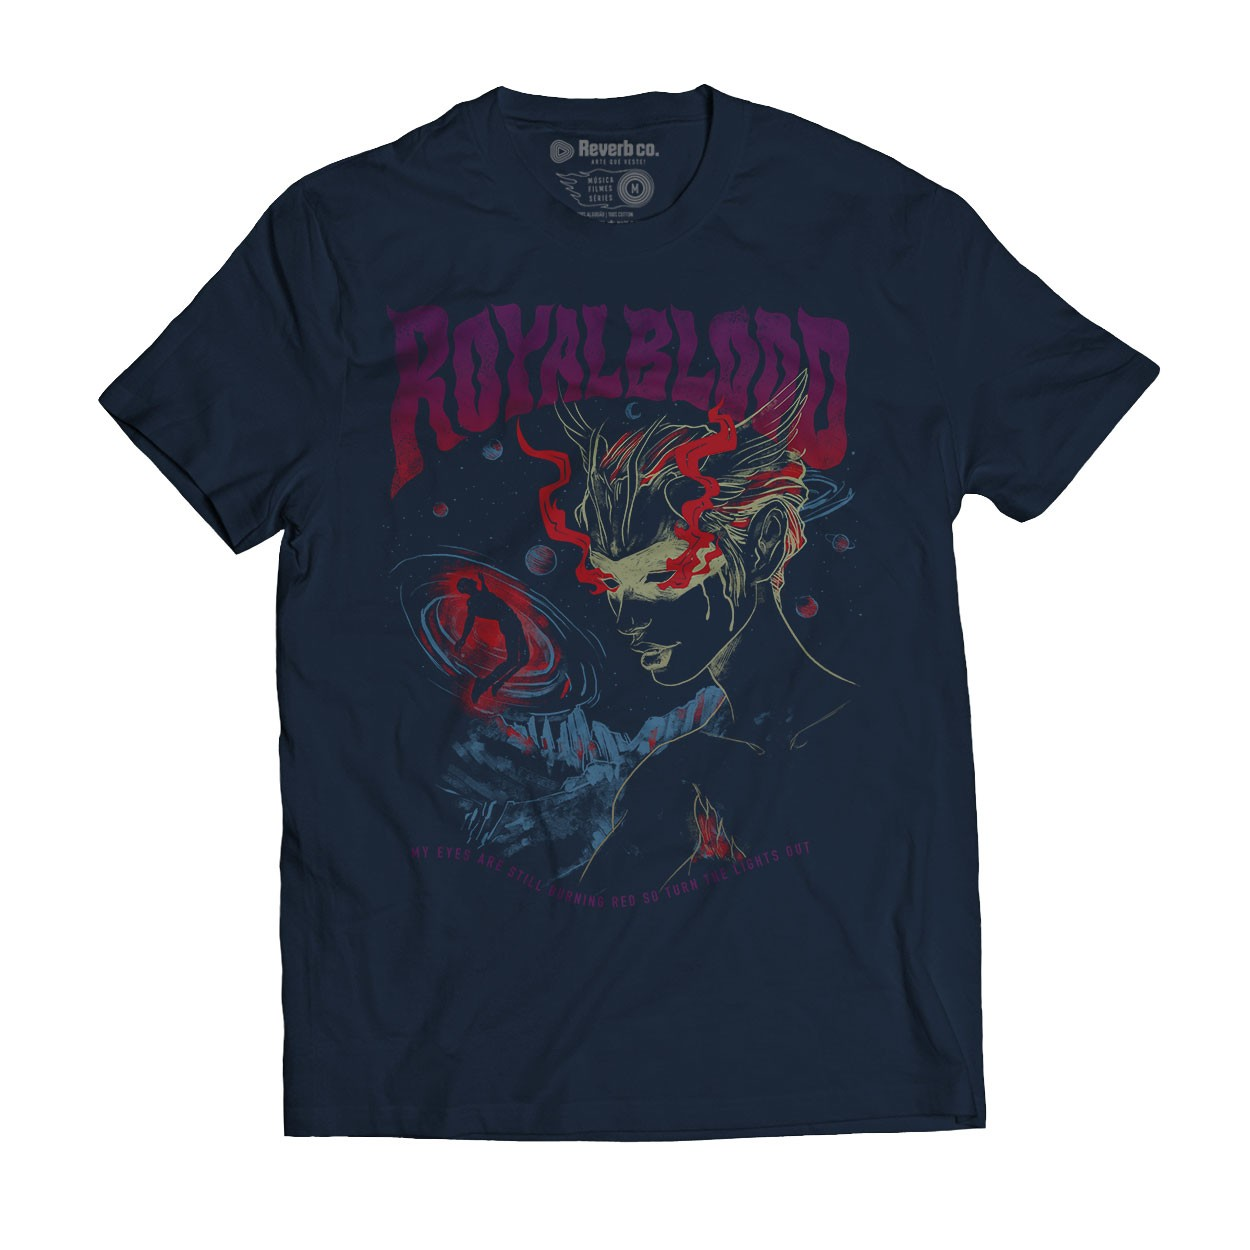 Camiseta Lights Out - Royal Blood - Masculino